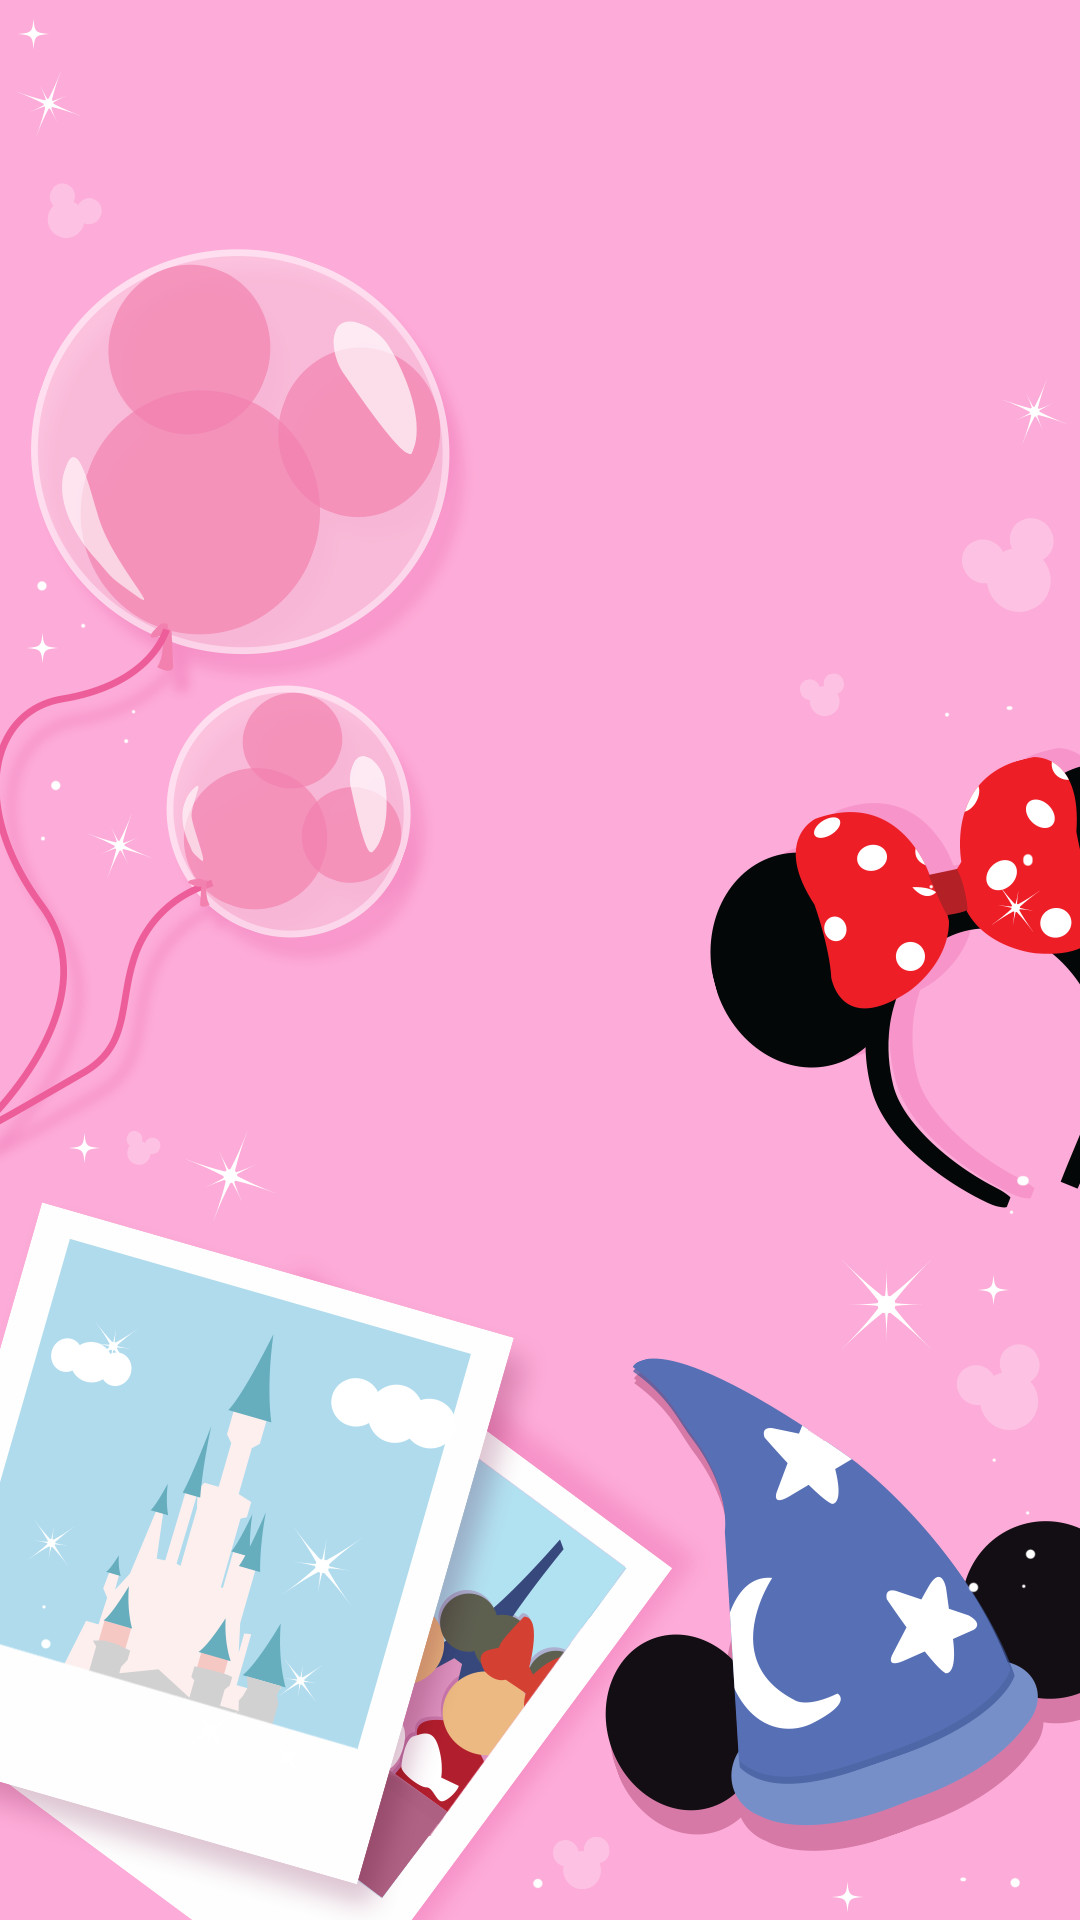 Cute Girly Wallpapers For Iphone 6 Plus Pink Cute Wallpaper 69 Images